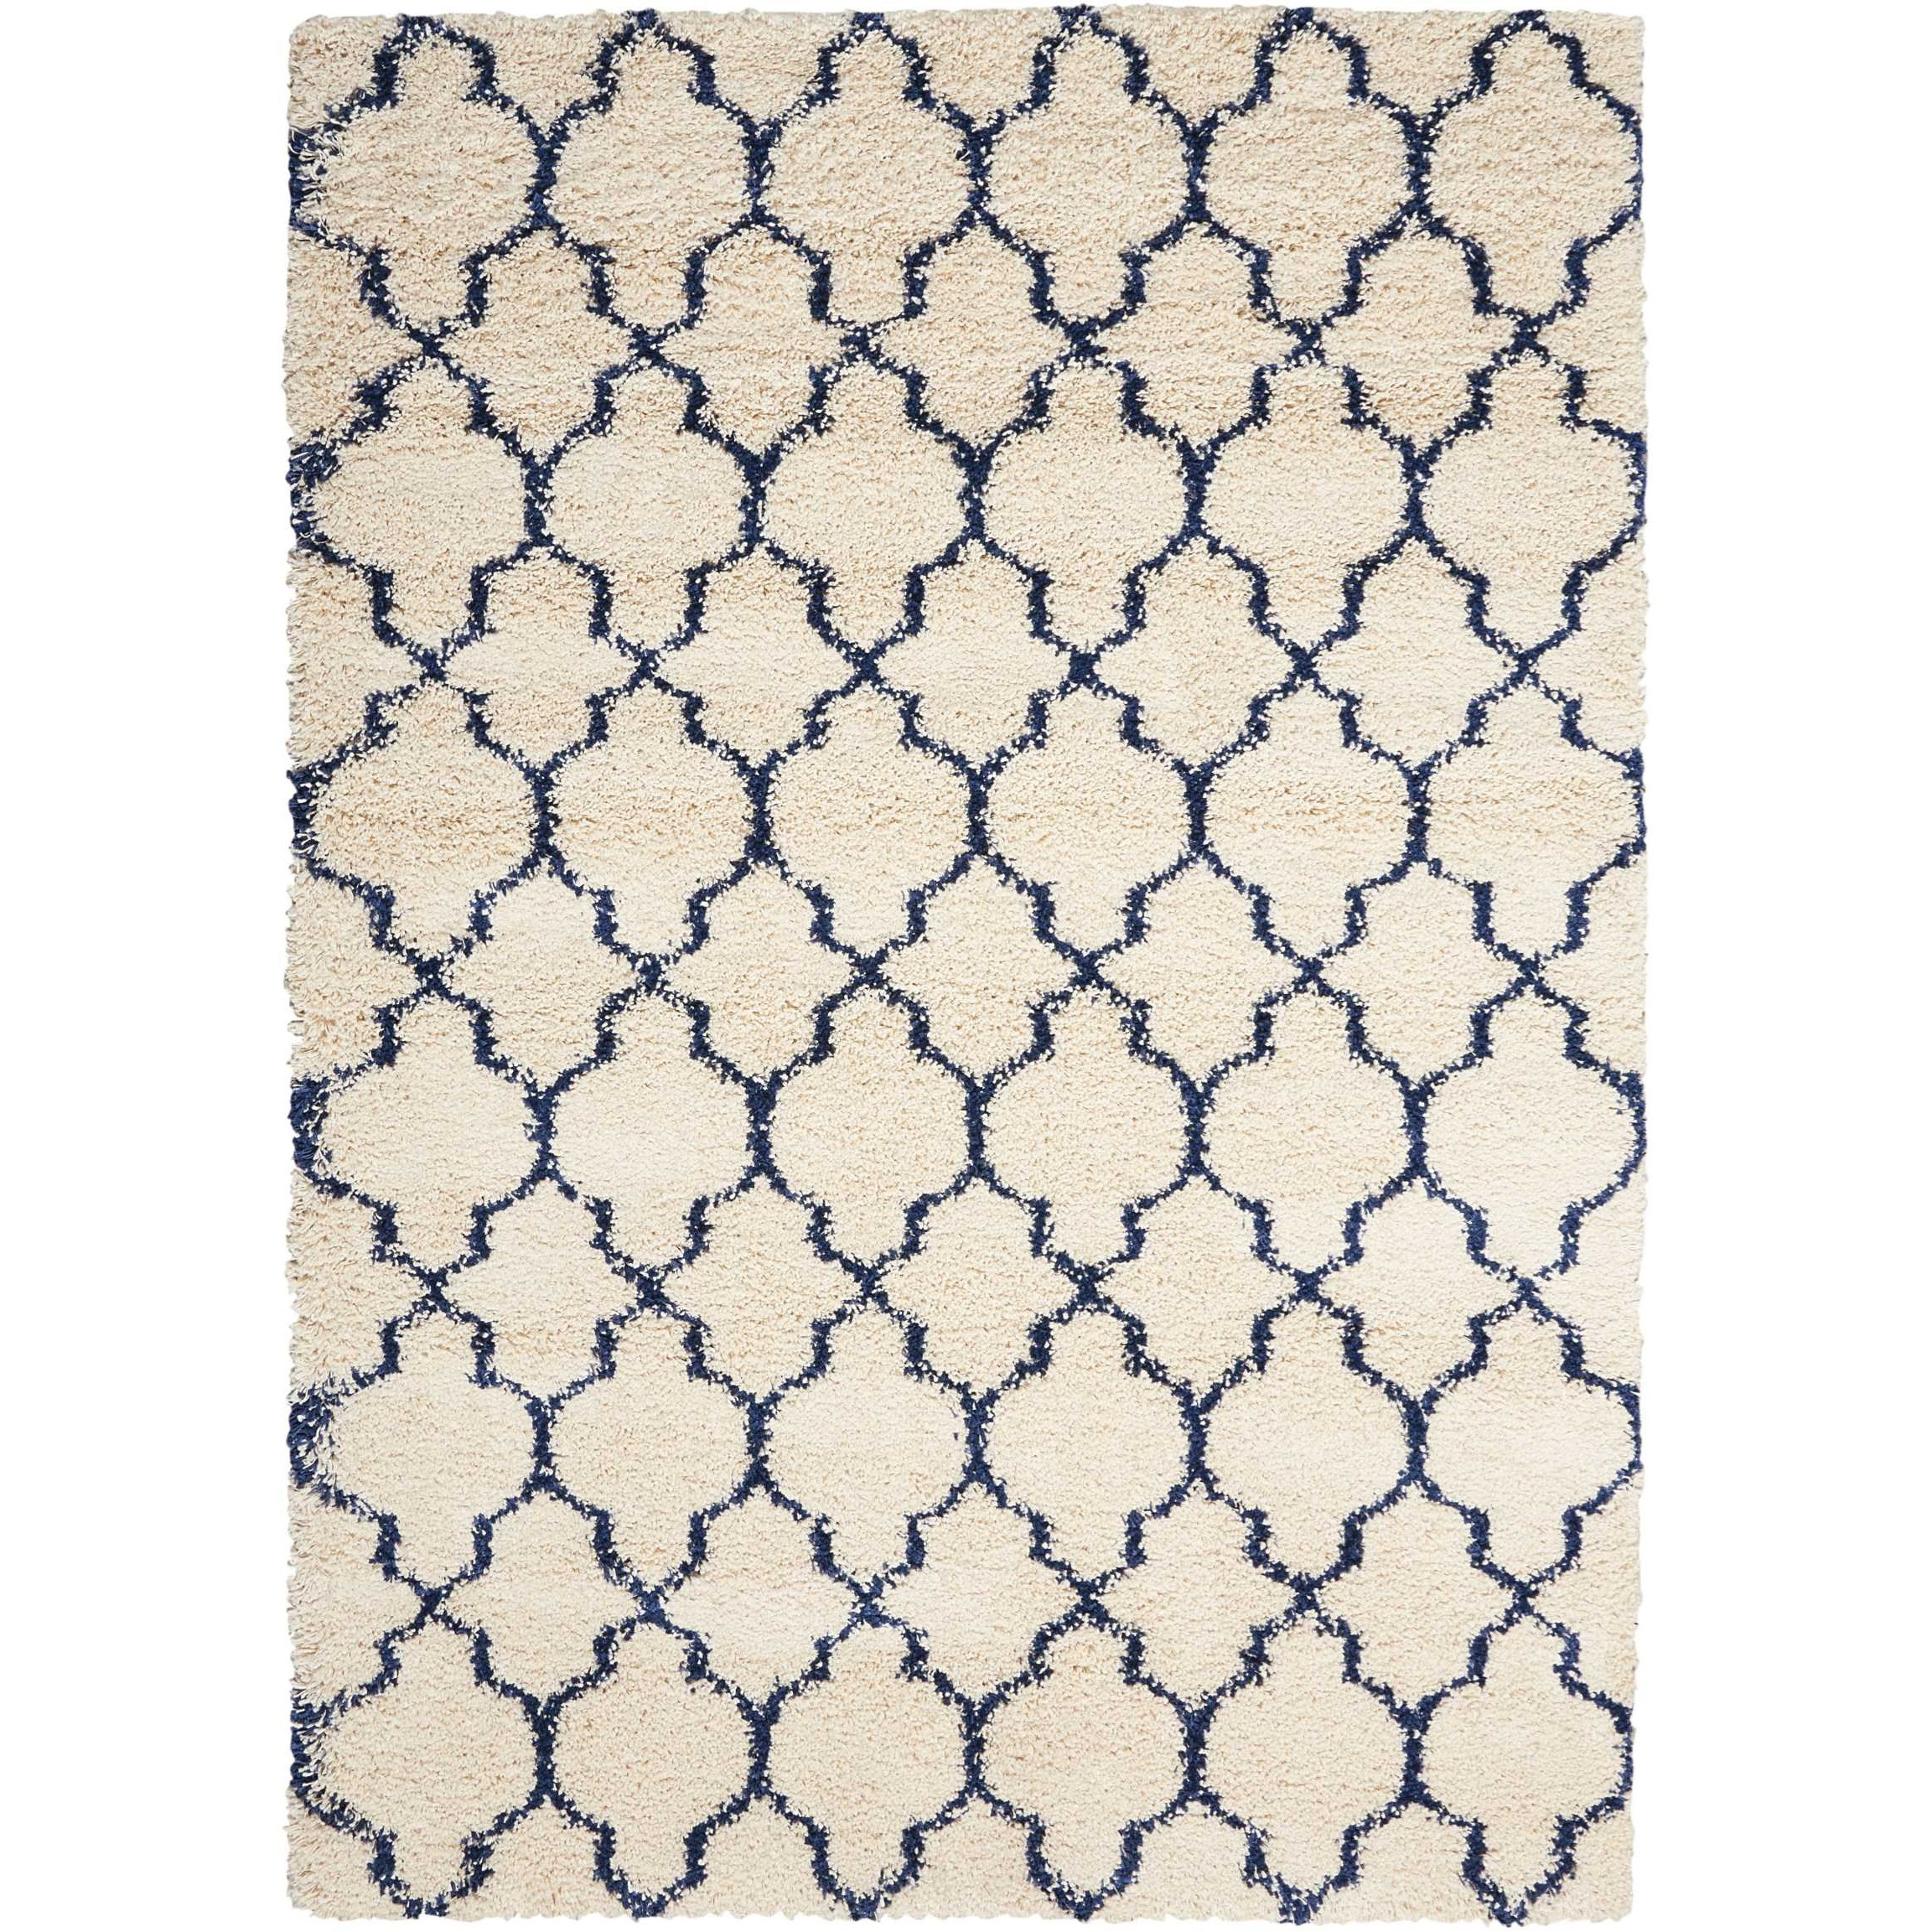 """Amore 6'7"""" x 9'6"""" Ivory/Blue Rectangle Rug by Nourison at Home Collections Furniture"""